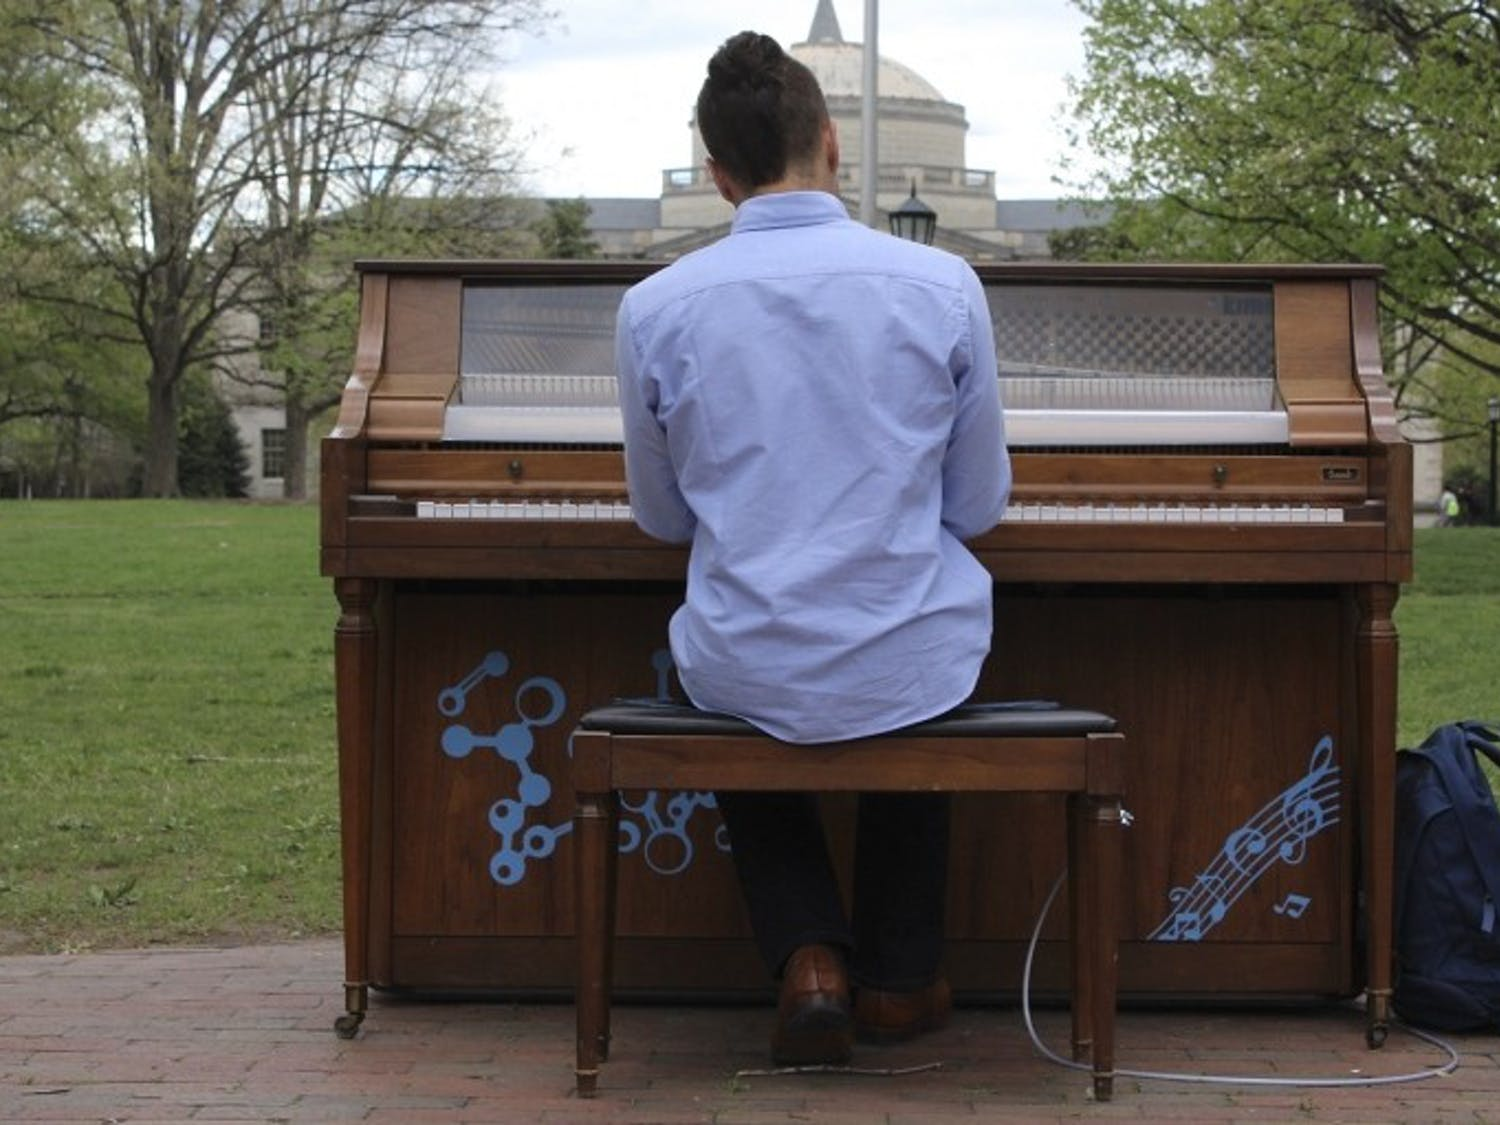 Moving forward after Arts Everywhere Day, UNC has a long term goal of increasing interest in the arts.